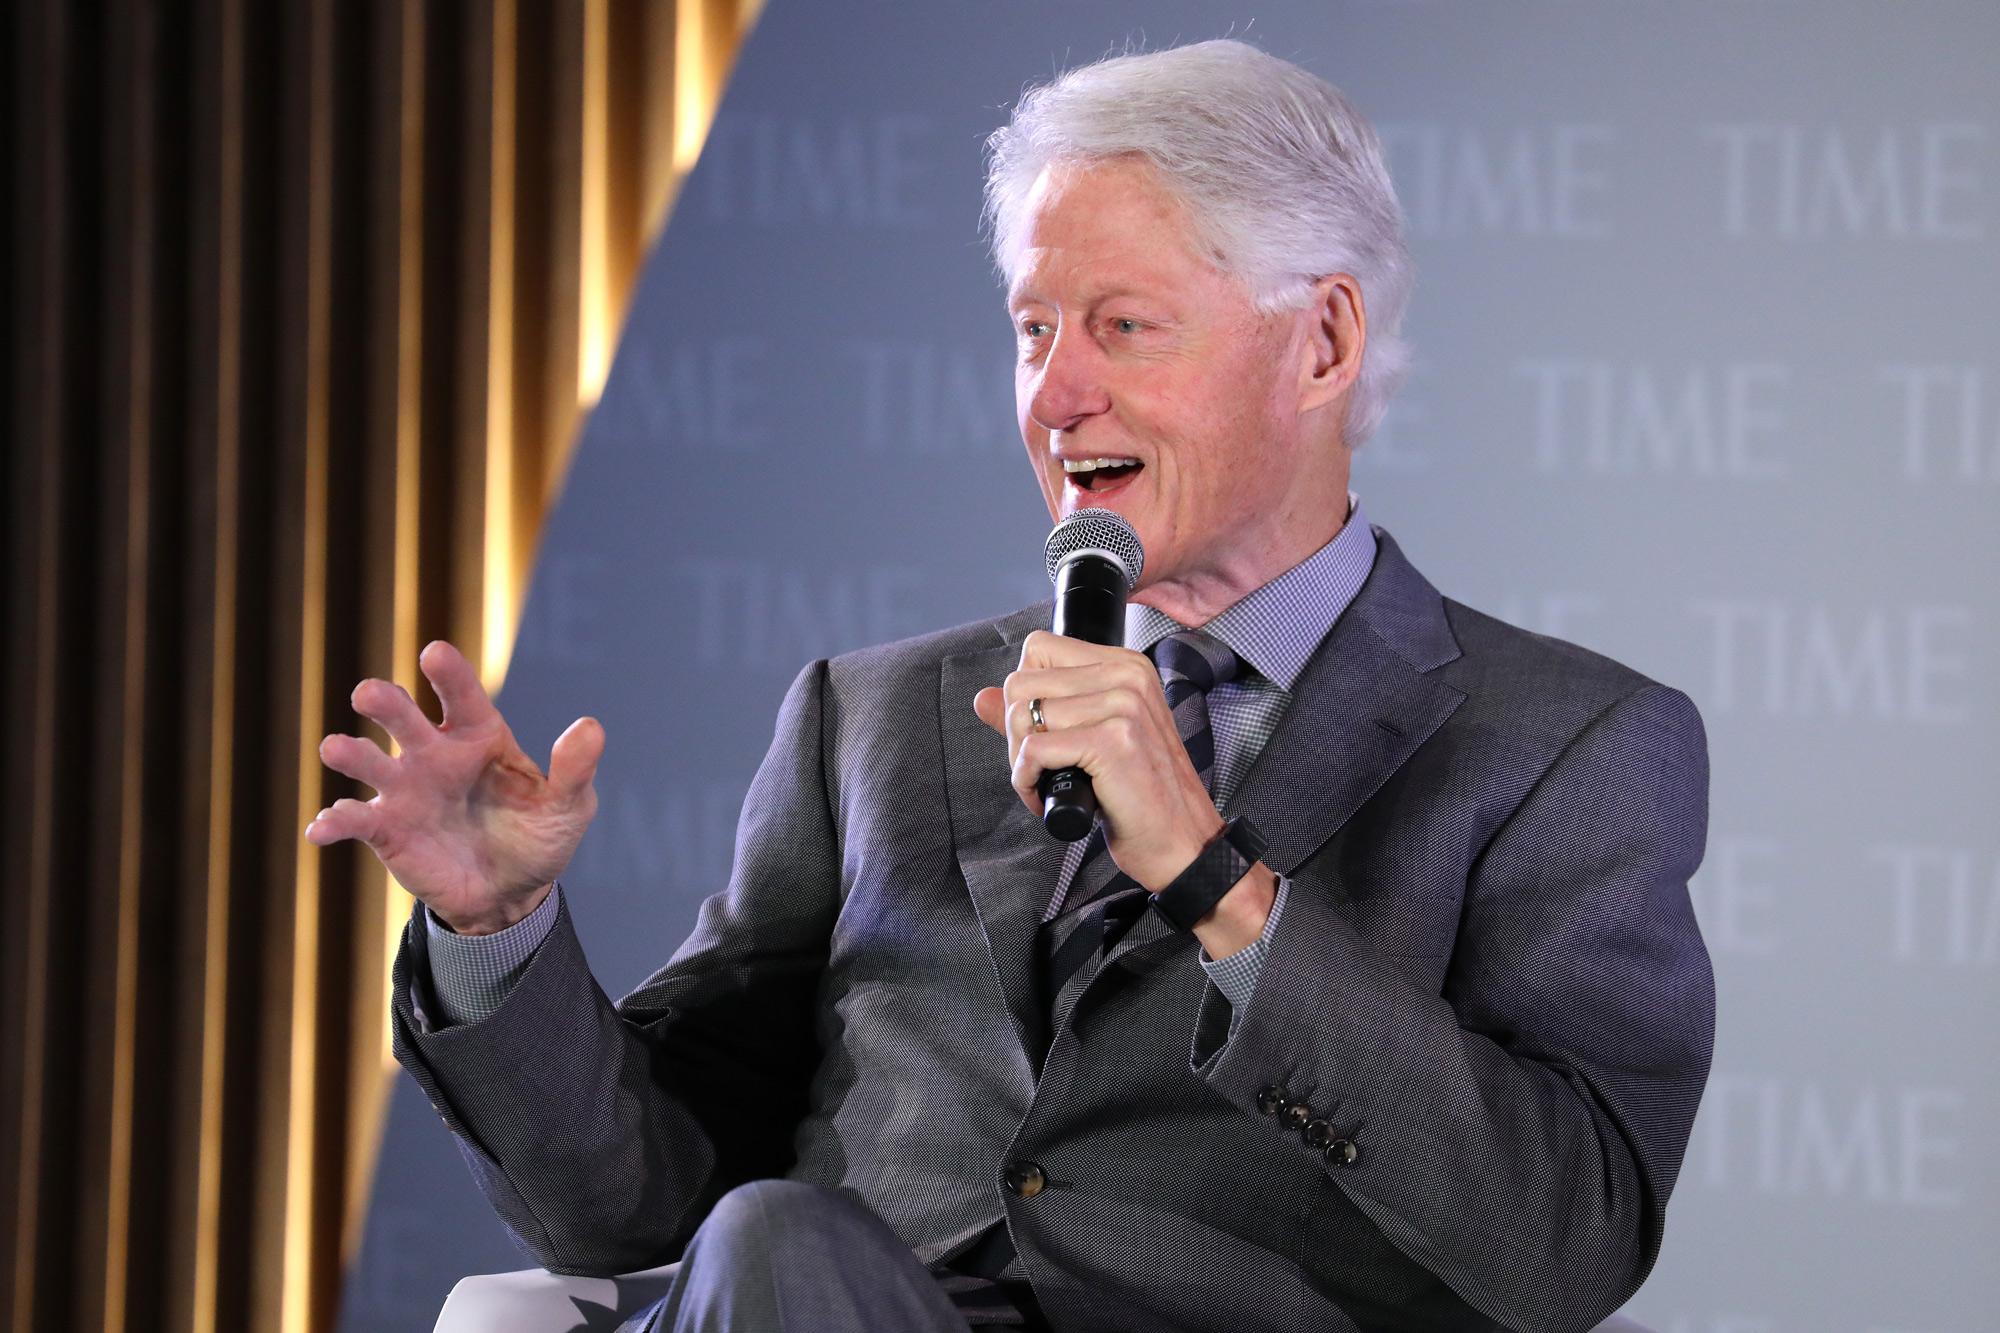 Former President Bill Clinton speaks during the TIME 100 Health Summit at Pier 17 on October 17, 2019 in New York City, New York.